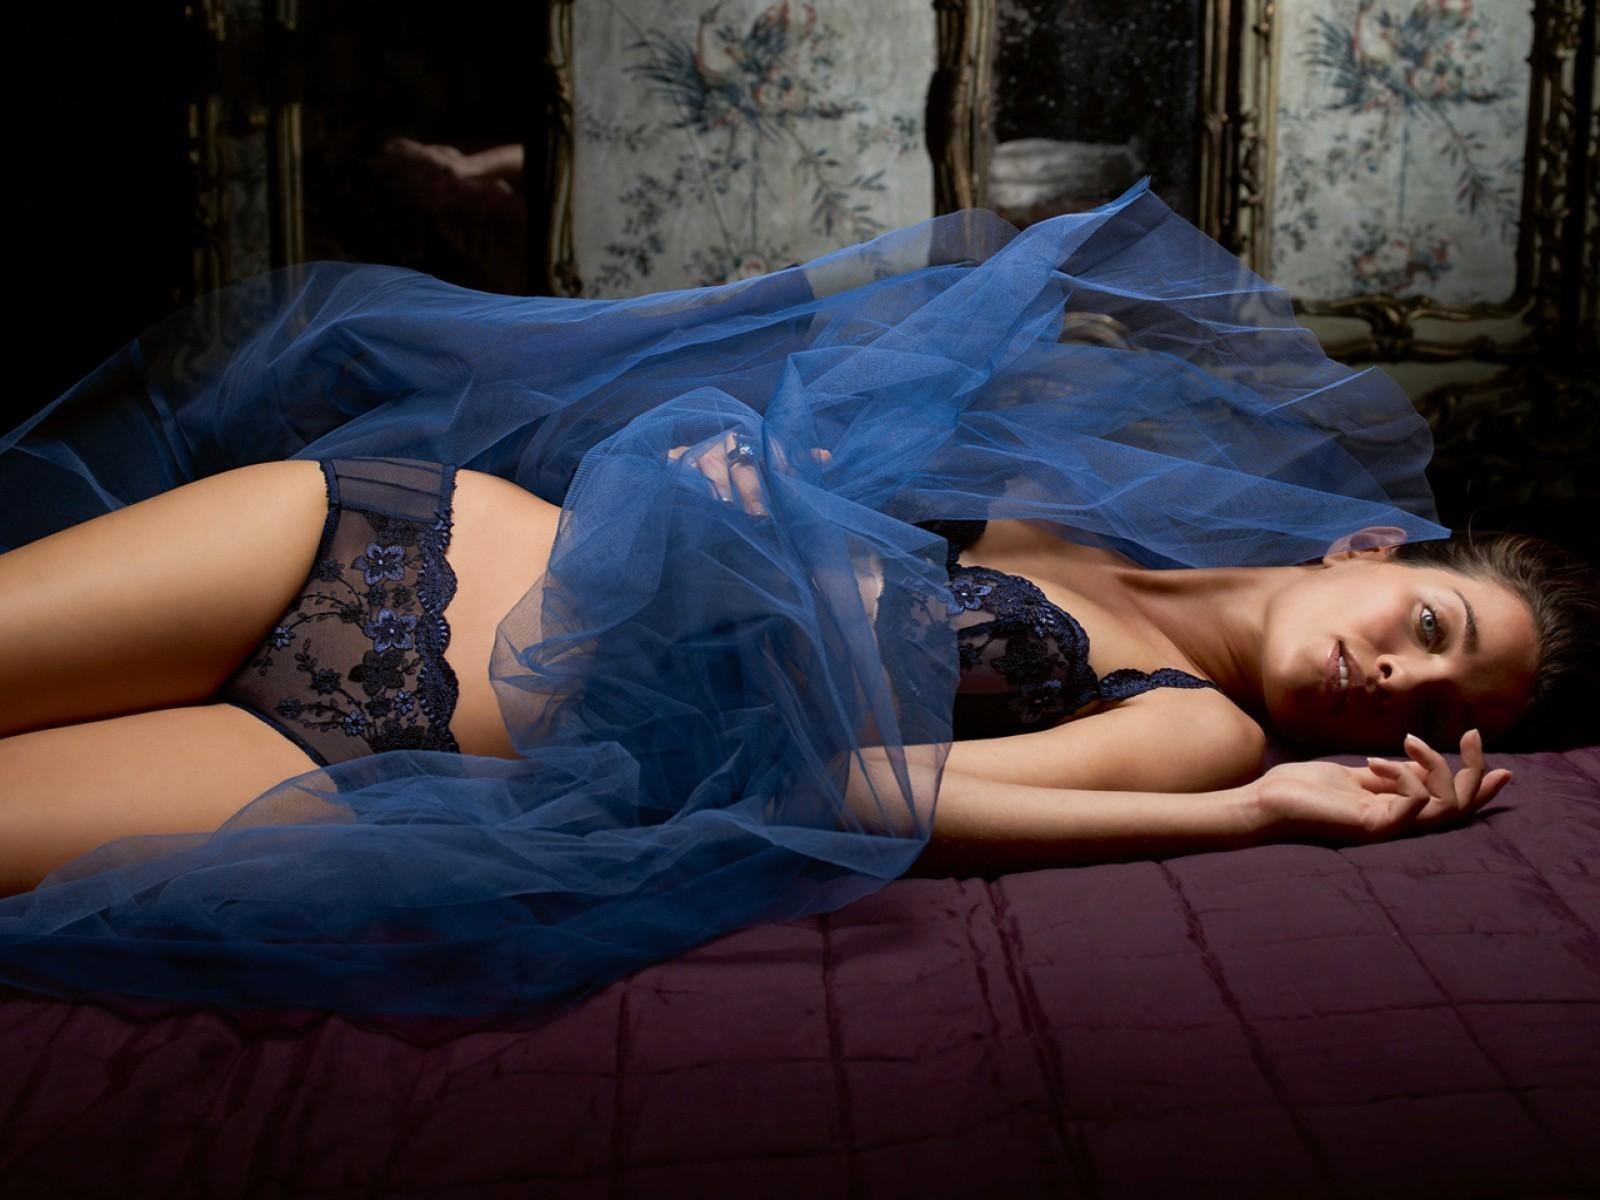 Dark Blue Fancy Lace Bra And Knickers With Blue Netting